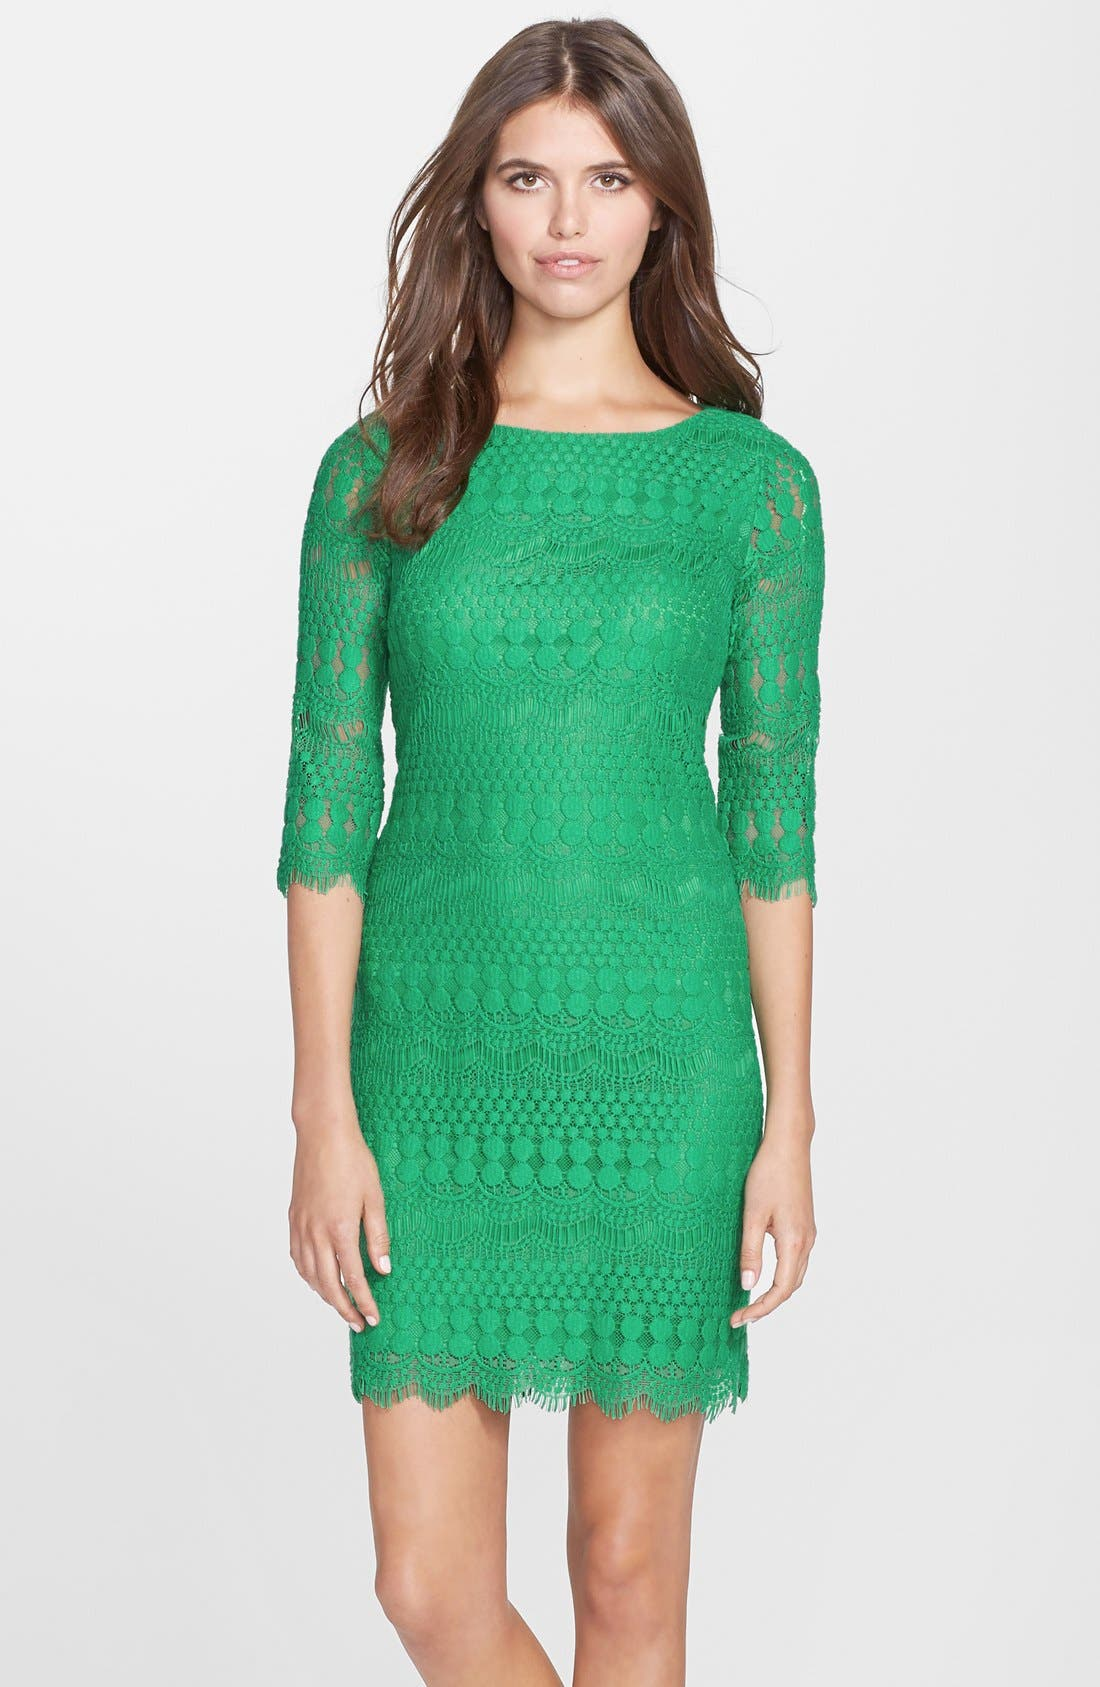 Alternate Image 1 Selected - Eliza J Scalloped Lace Shift Dress (Petite)